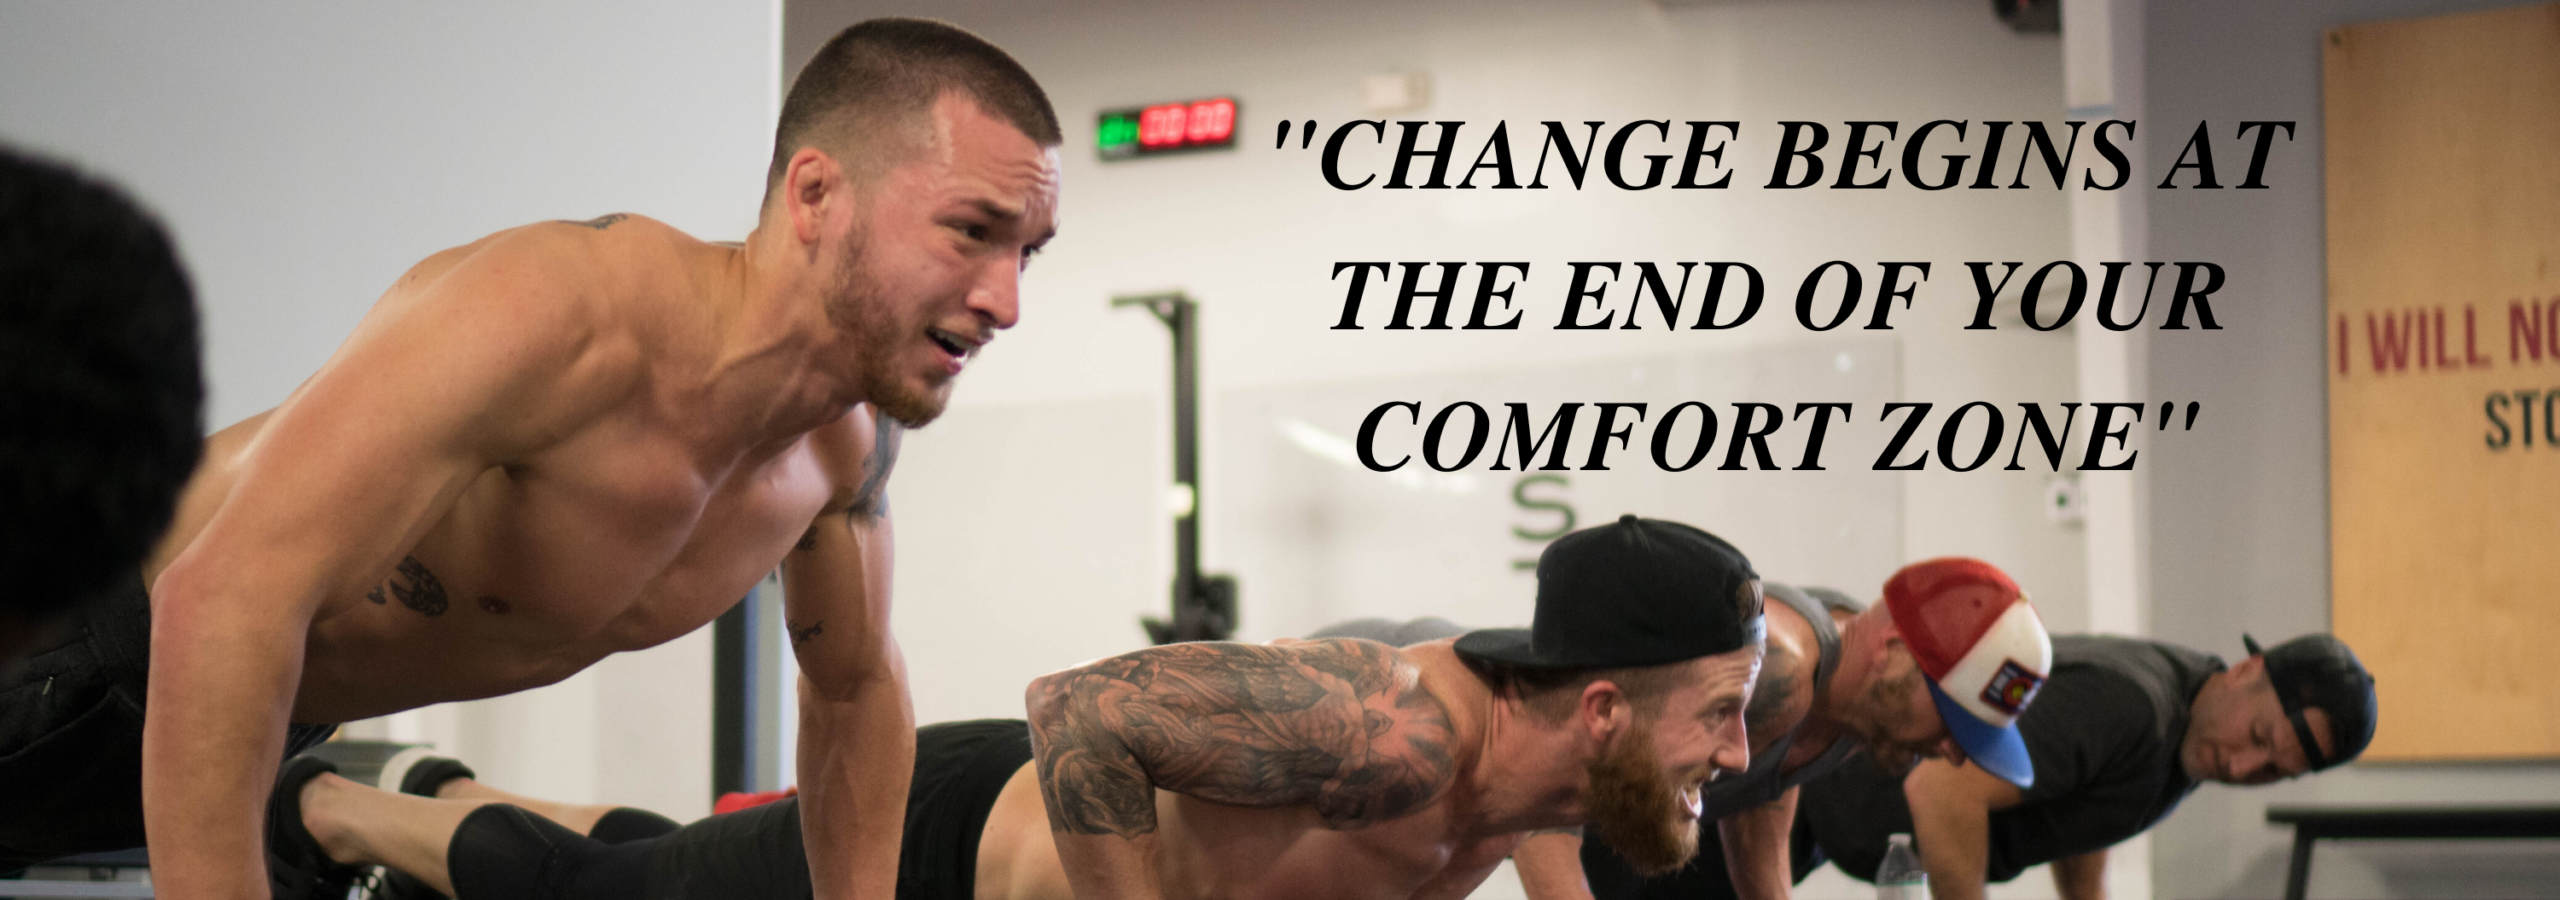 _Change Begins At The End Of Your Comfort Zone_